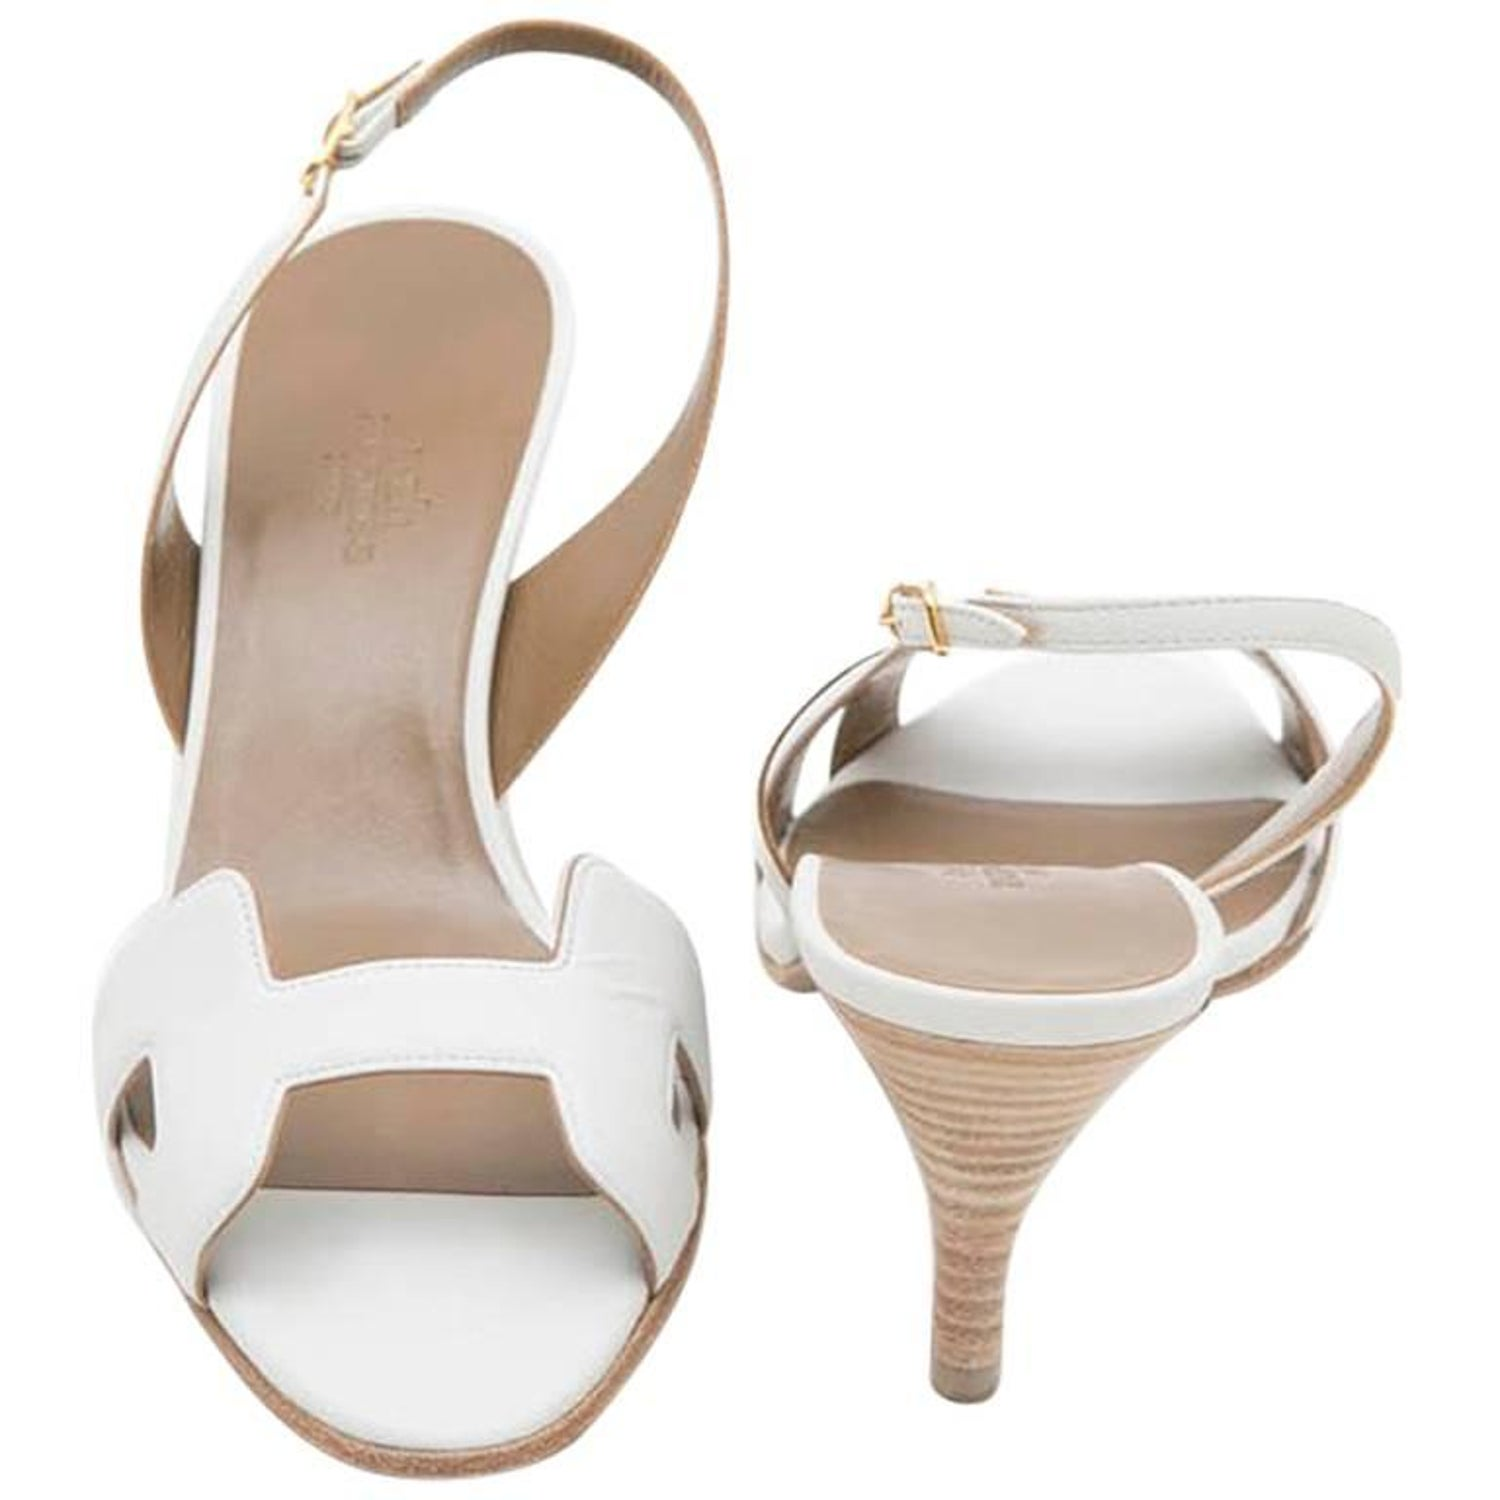 e26fca8ea966 HERMES  Oran  High Heels Sandals in White Smooth Leather Size 39FR at  1stdibs